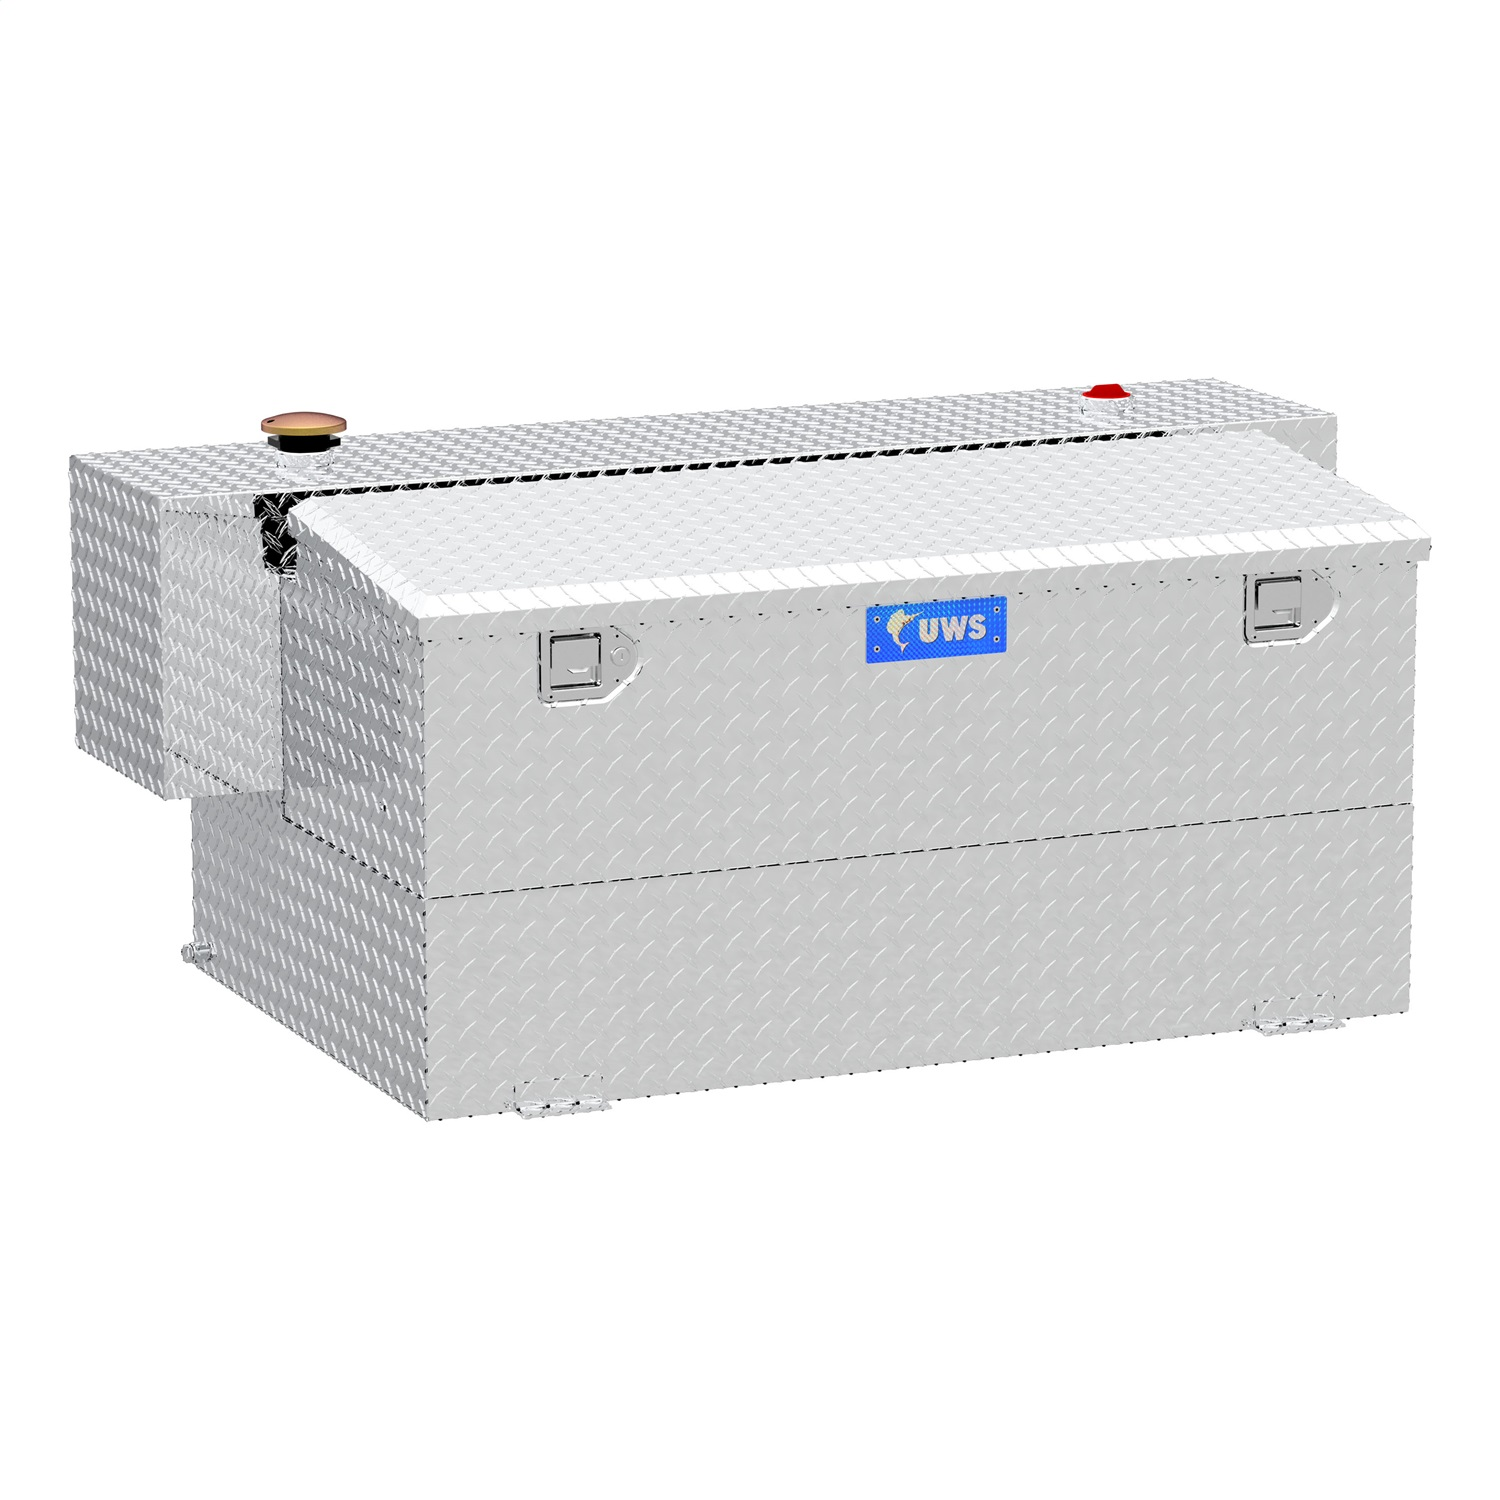 Combination Hammerhead Transfer Tank/Tool Box, 100 Gallon, Aluminum